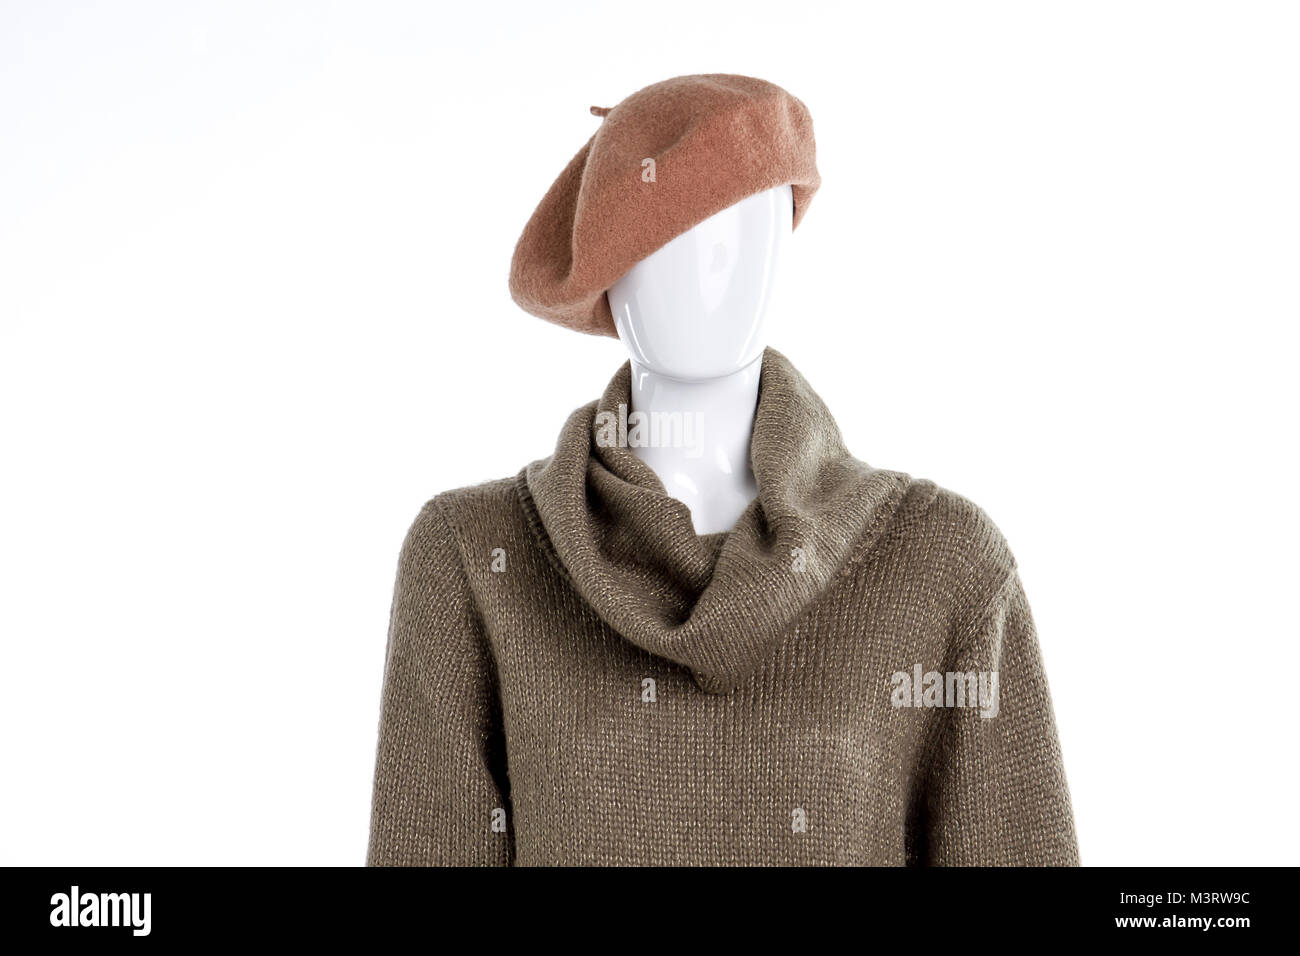 b3d253fd8ad18 French beret on female mannequin. Denys Kovtun   Alamy Stock Photo